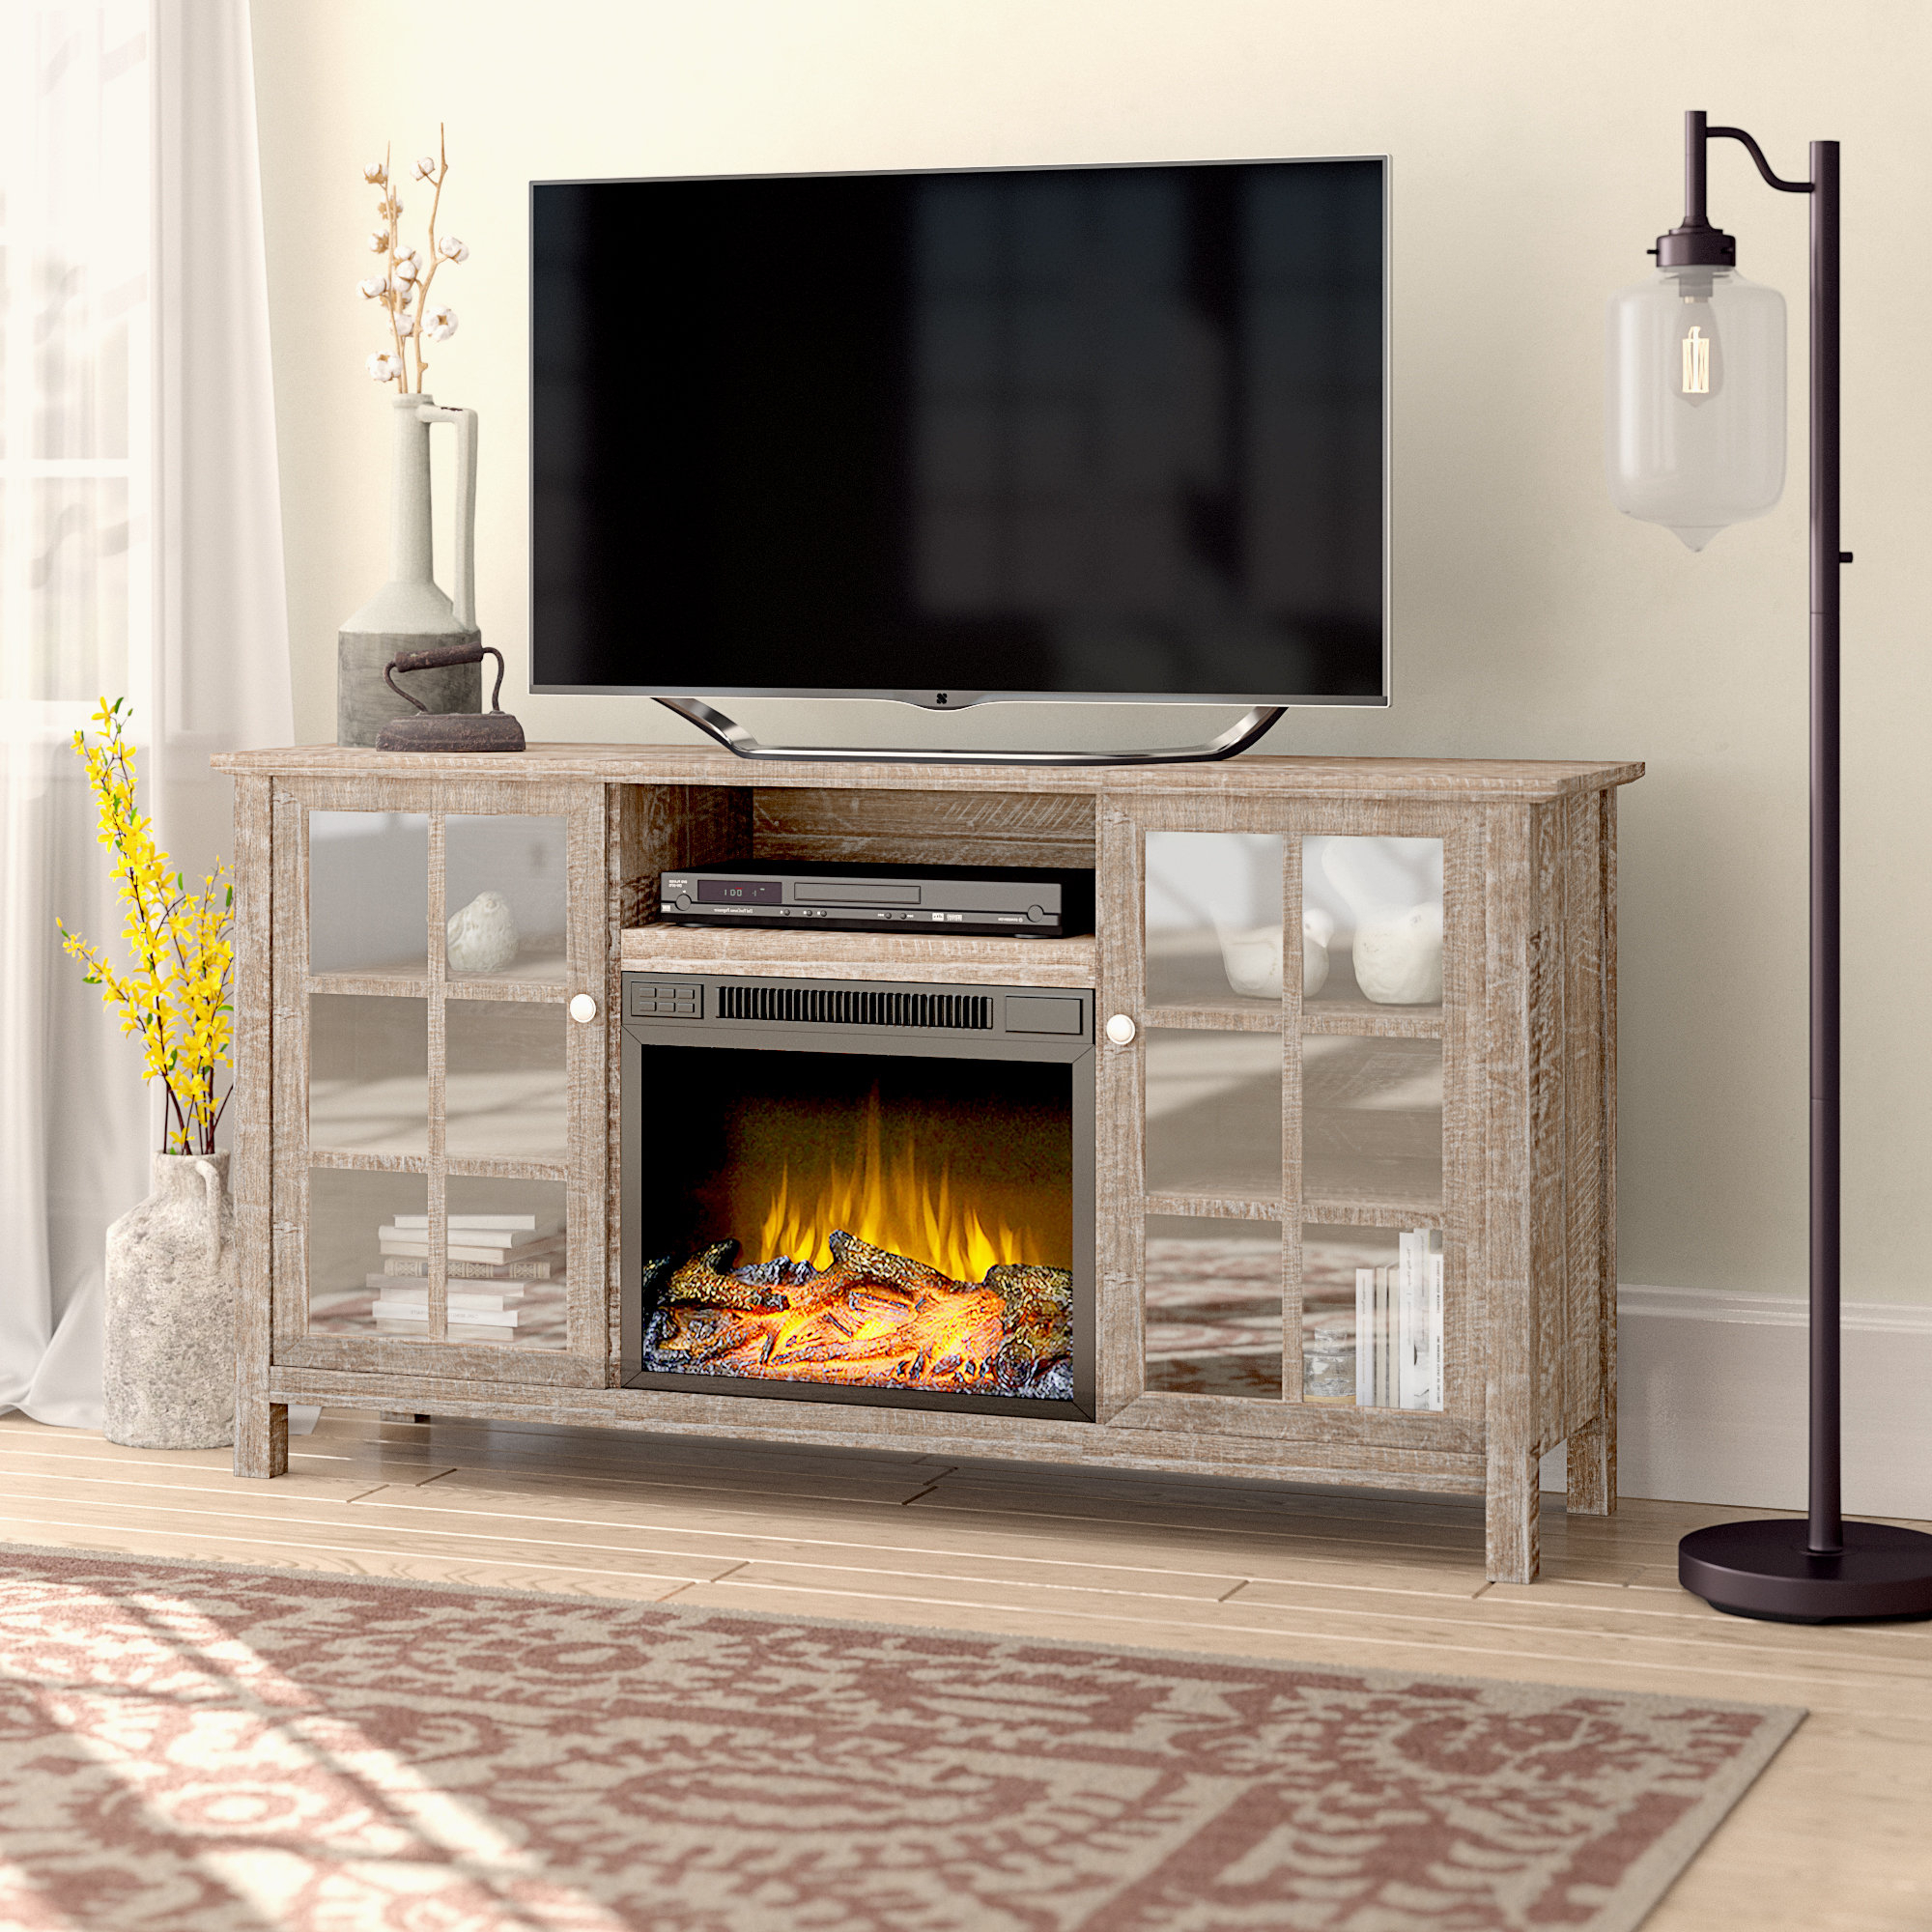 Trendy Laurel Foundry Modern Farmhouse Benoit Tv Stand For Tvs Up To 65 Inside Caden 63 Inch Tv Stands (View 16 of 20)